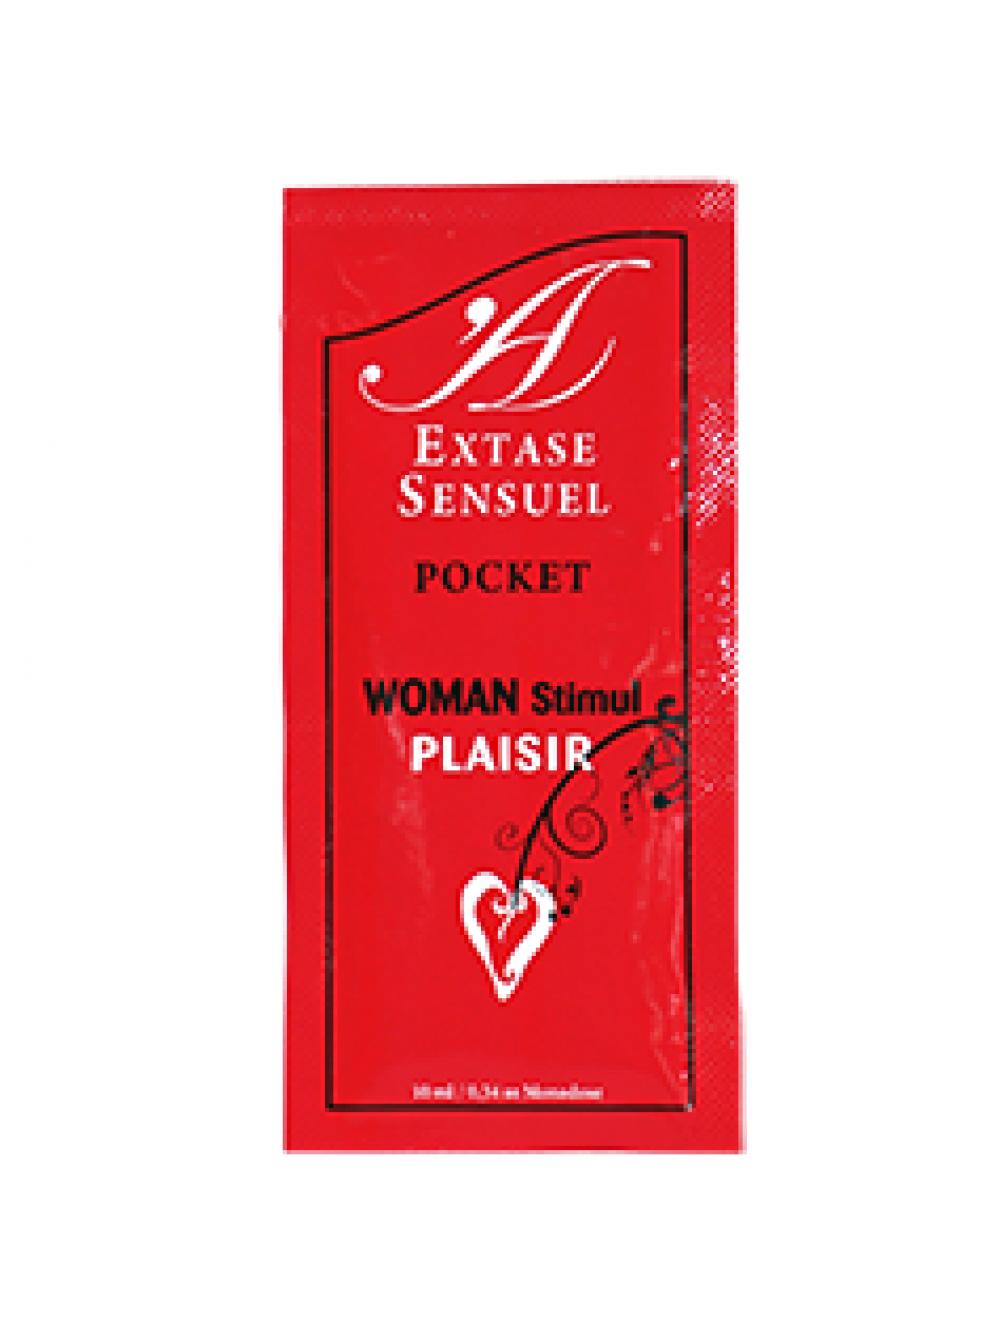 EXTASE SENSUEL WOMAN STIMUL PLAISIR POCKET